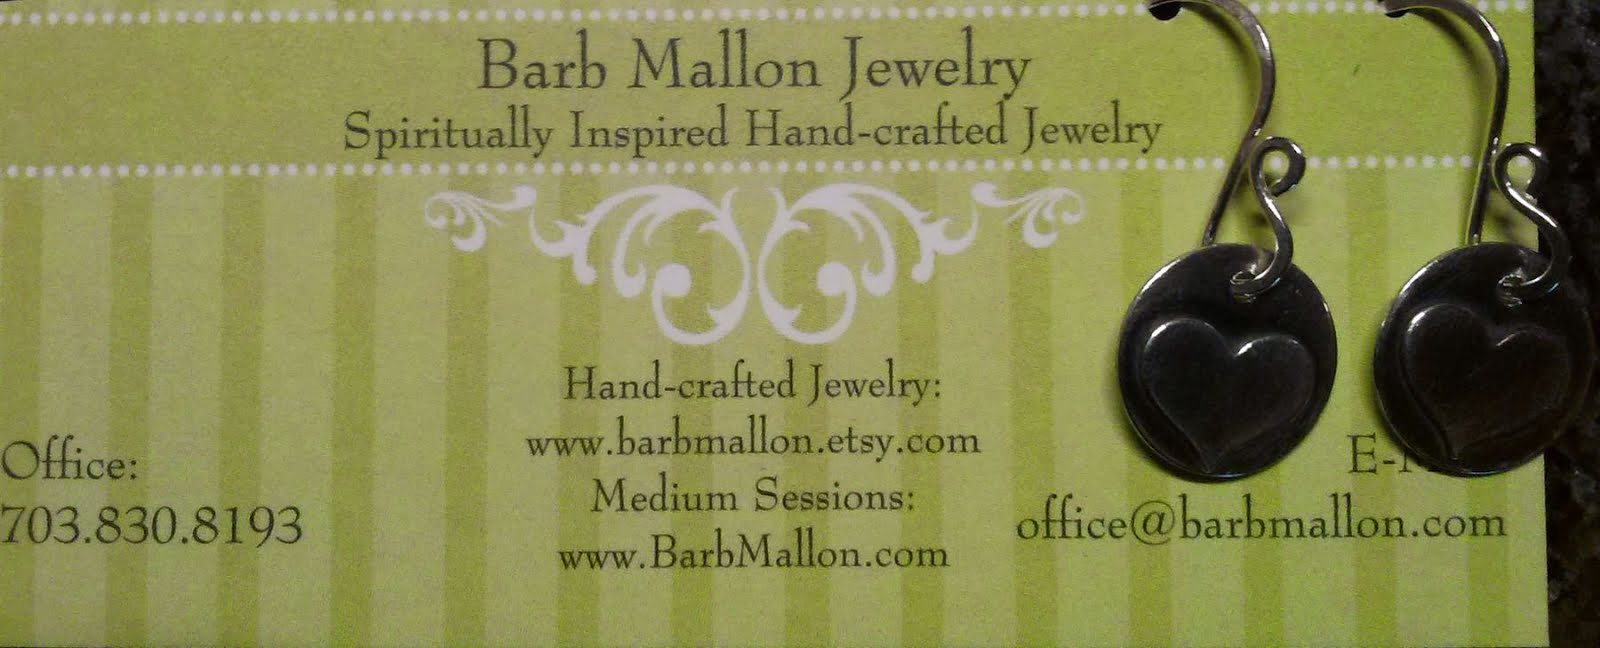 Handmade Jewelry by Barb Mallon!